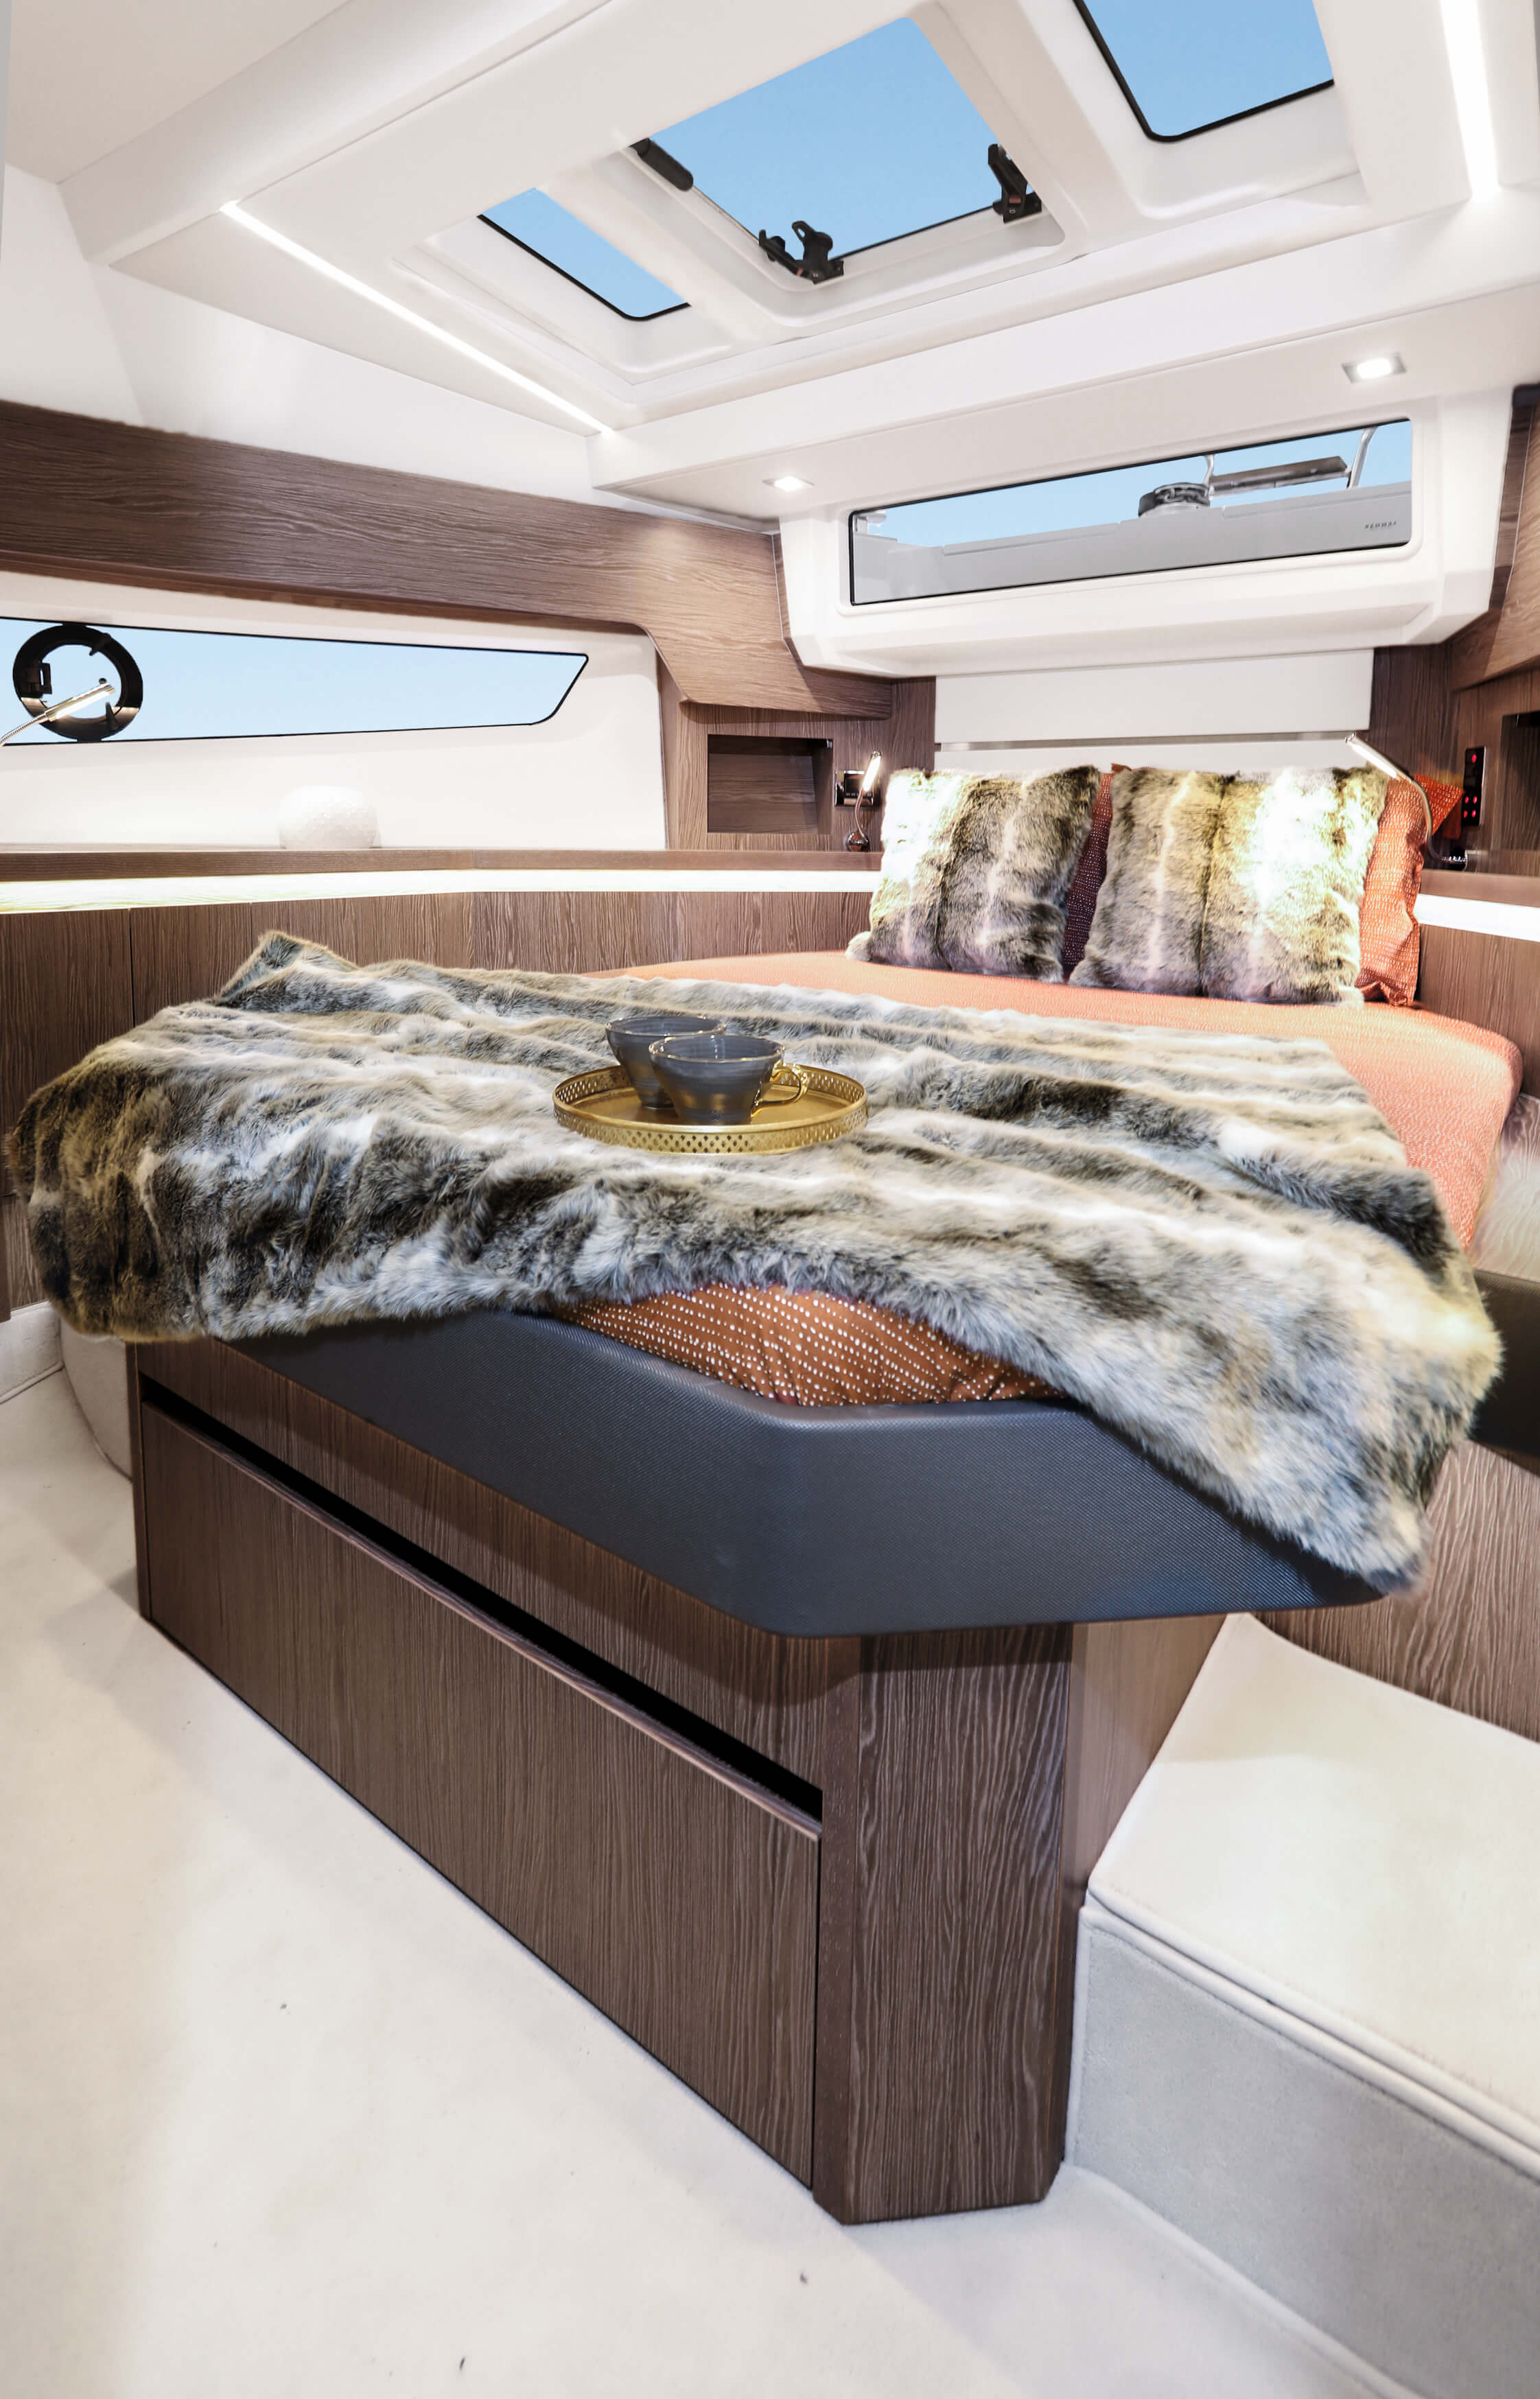 Sealine F430 Interno vista | VIP cabin with double berth, 2 wardrobes and sideboards with stowage and two bedside tables. 1 drawer underneath the bed. 3 Skylights, one openable. | Sealine